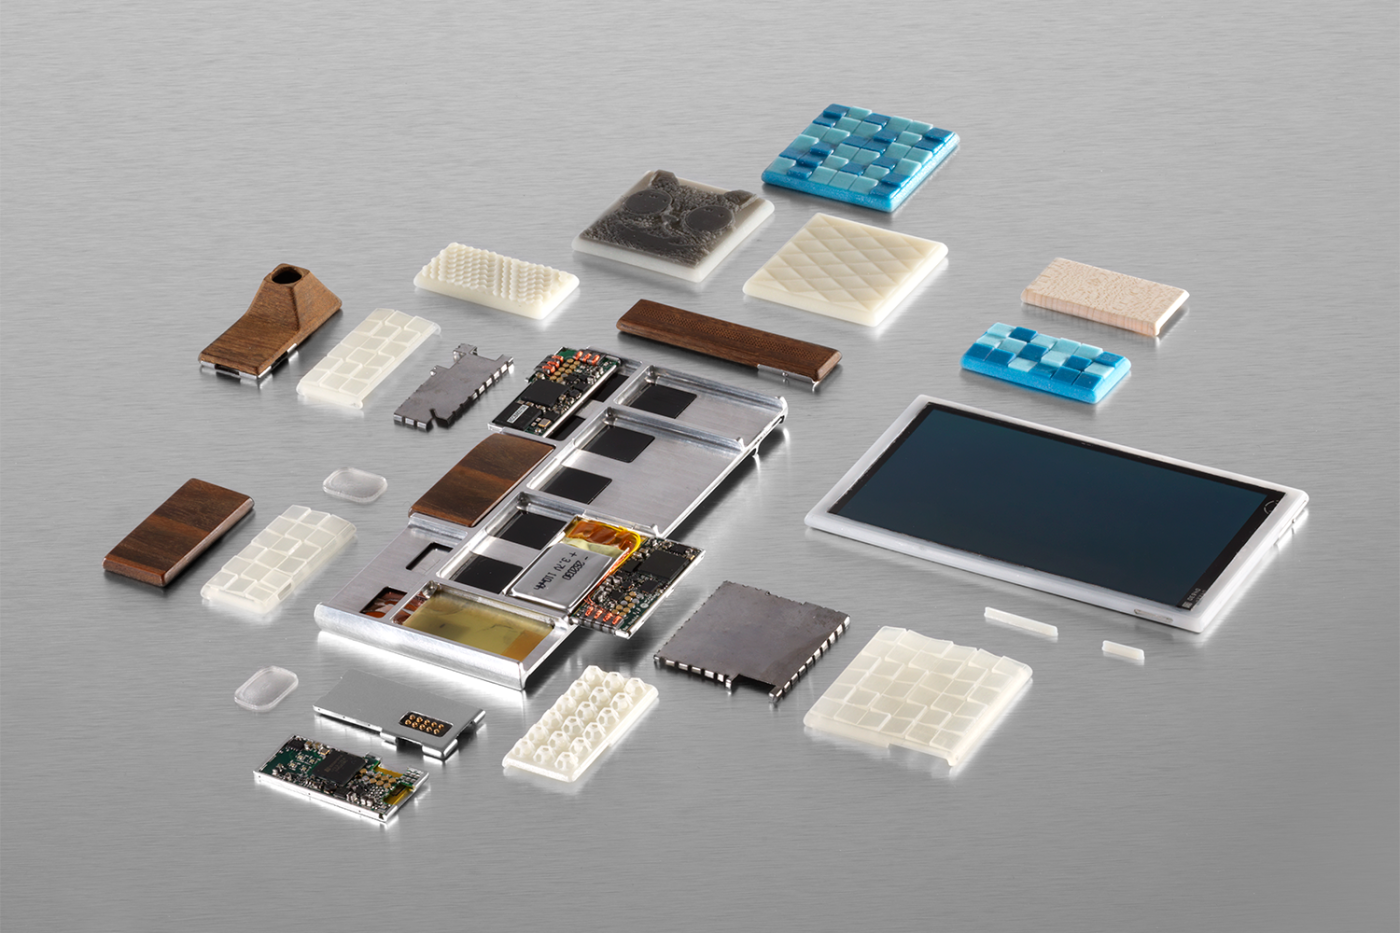 Parts of a functional prototype of a Project Ara phone -- still a work in progress -- including the endoskeleton frame, the screen, electrical components and custom 3D-printed module enclosures.